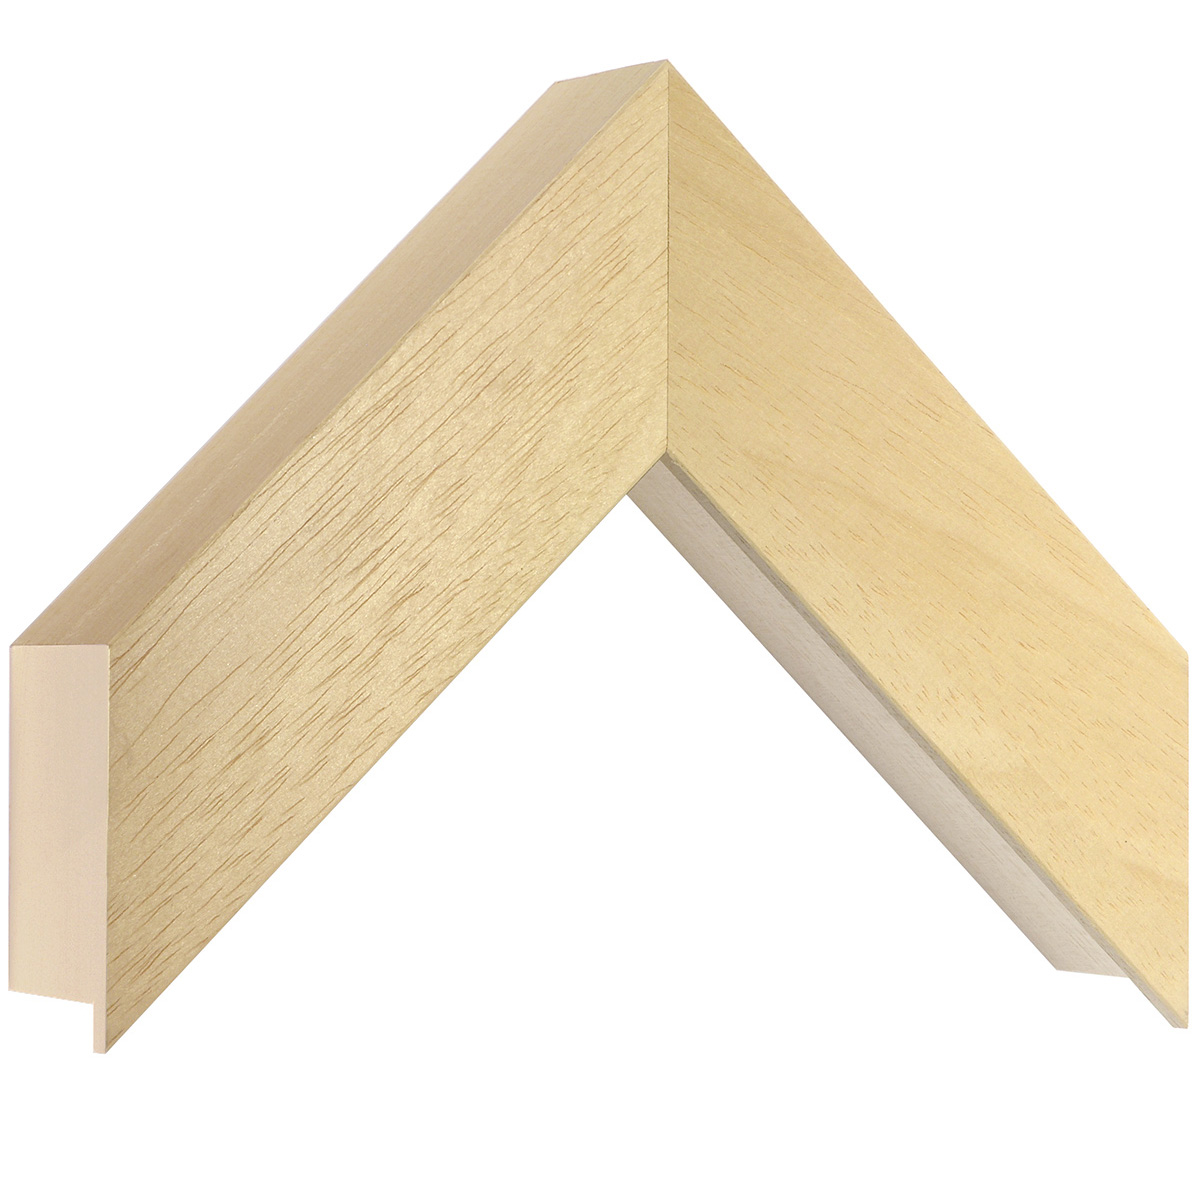 Moulding ayous, width 50mm, height 55mm, bare timber